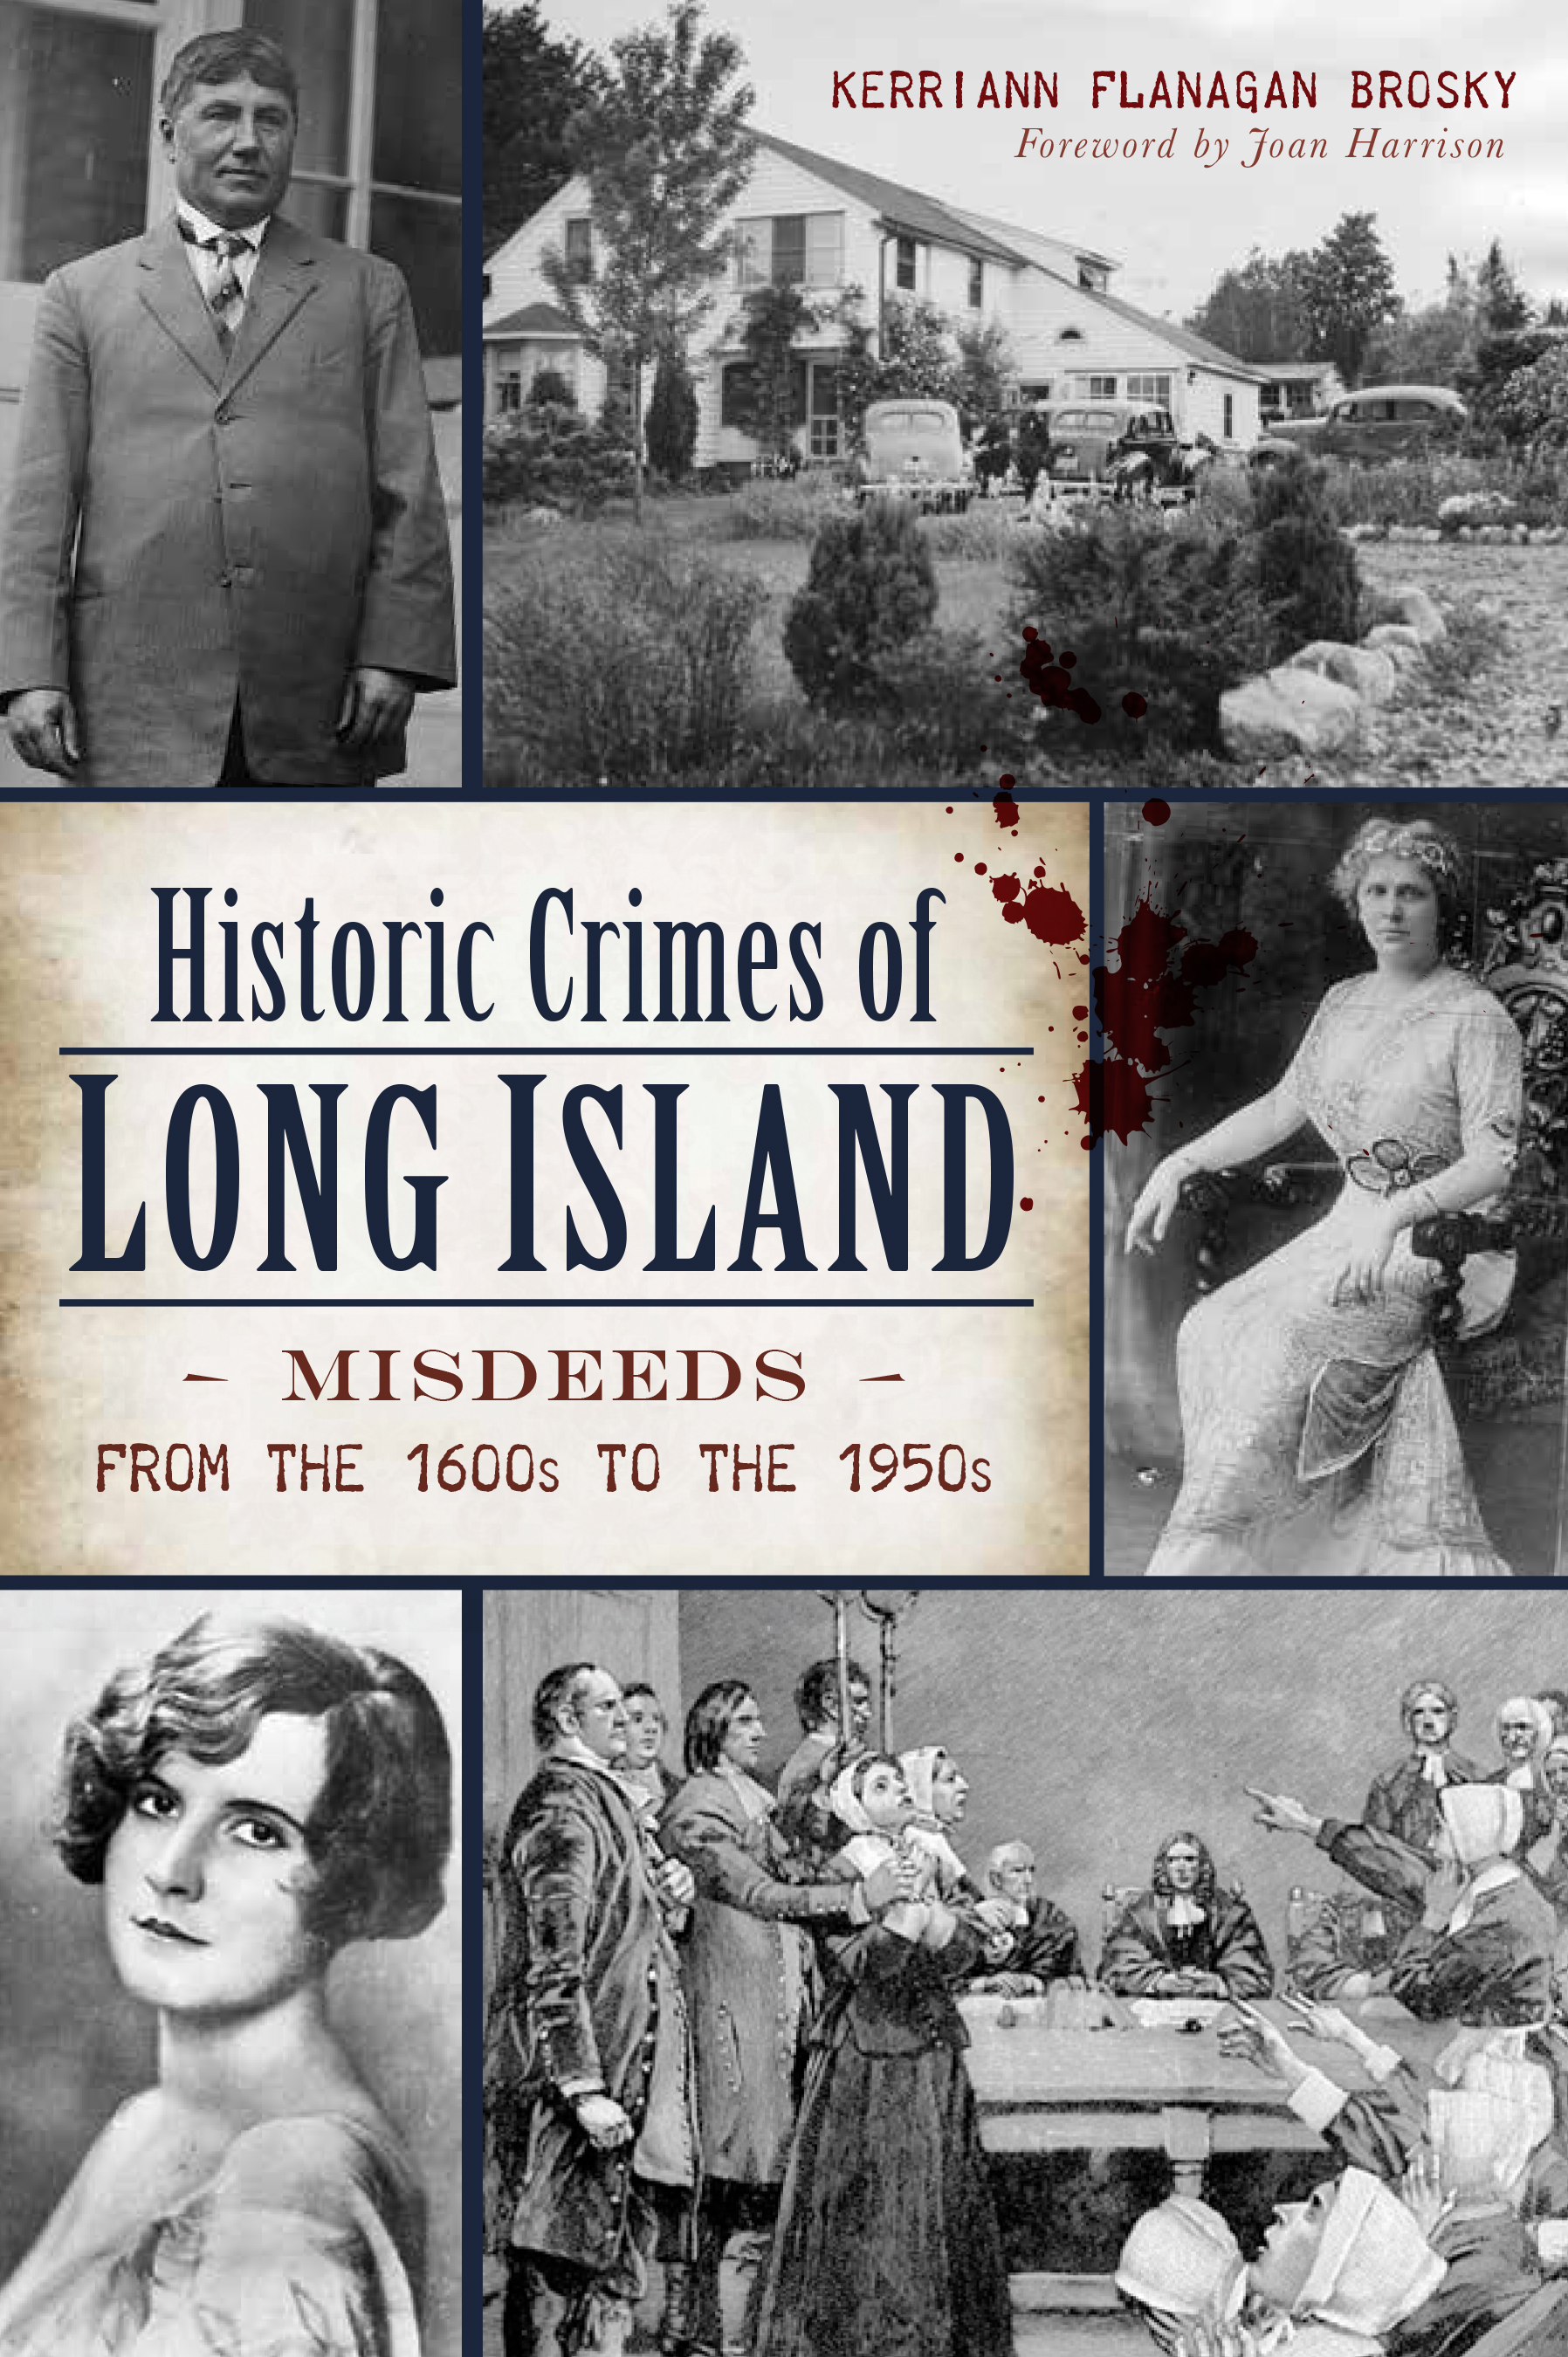 Historic Crimes of Long Island: Misdeeds from the 1600s to the 1950s